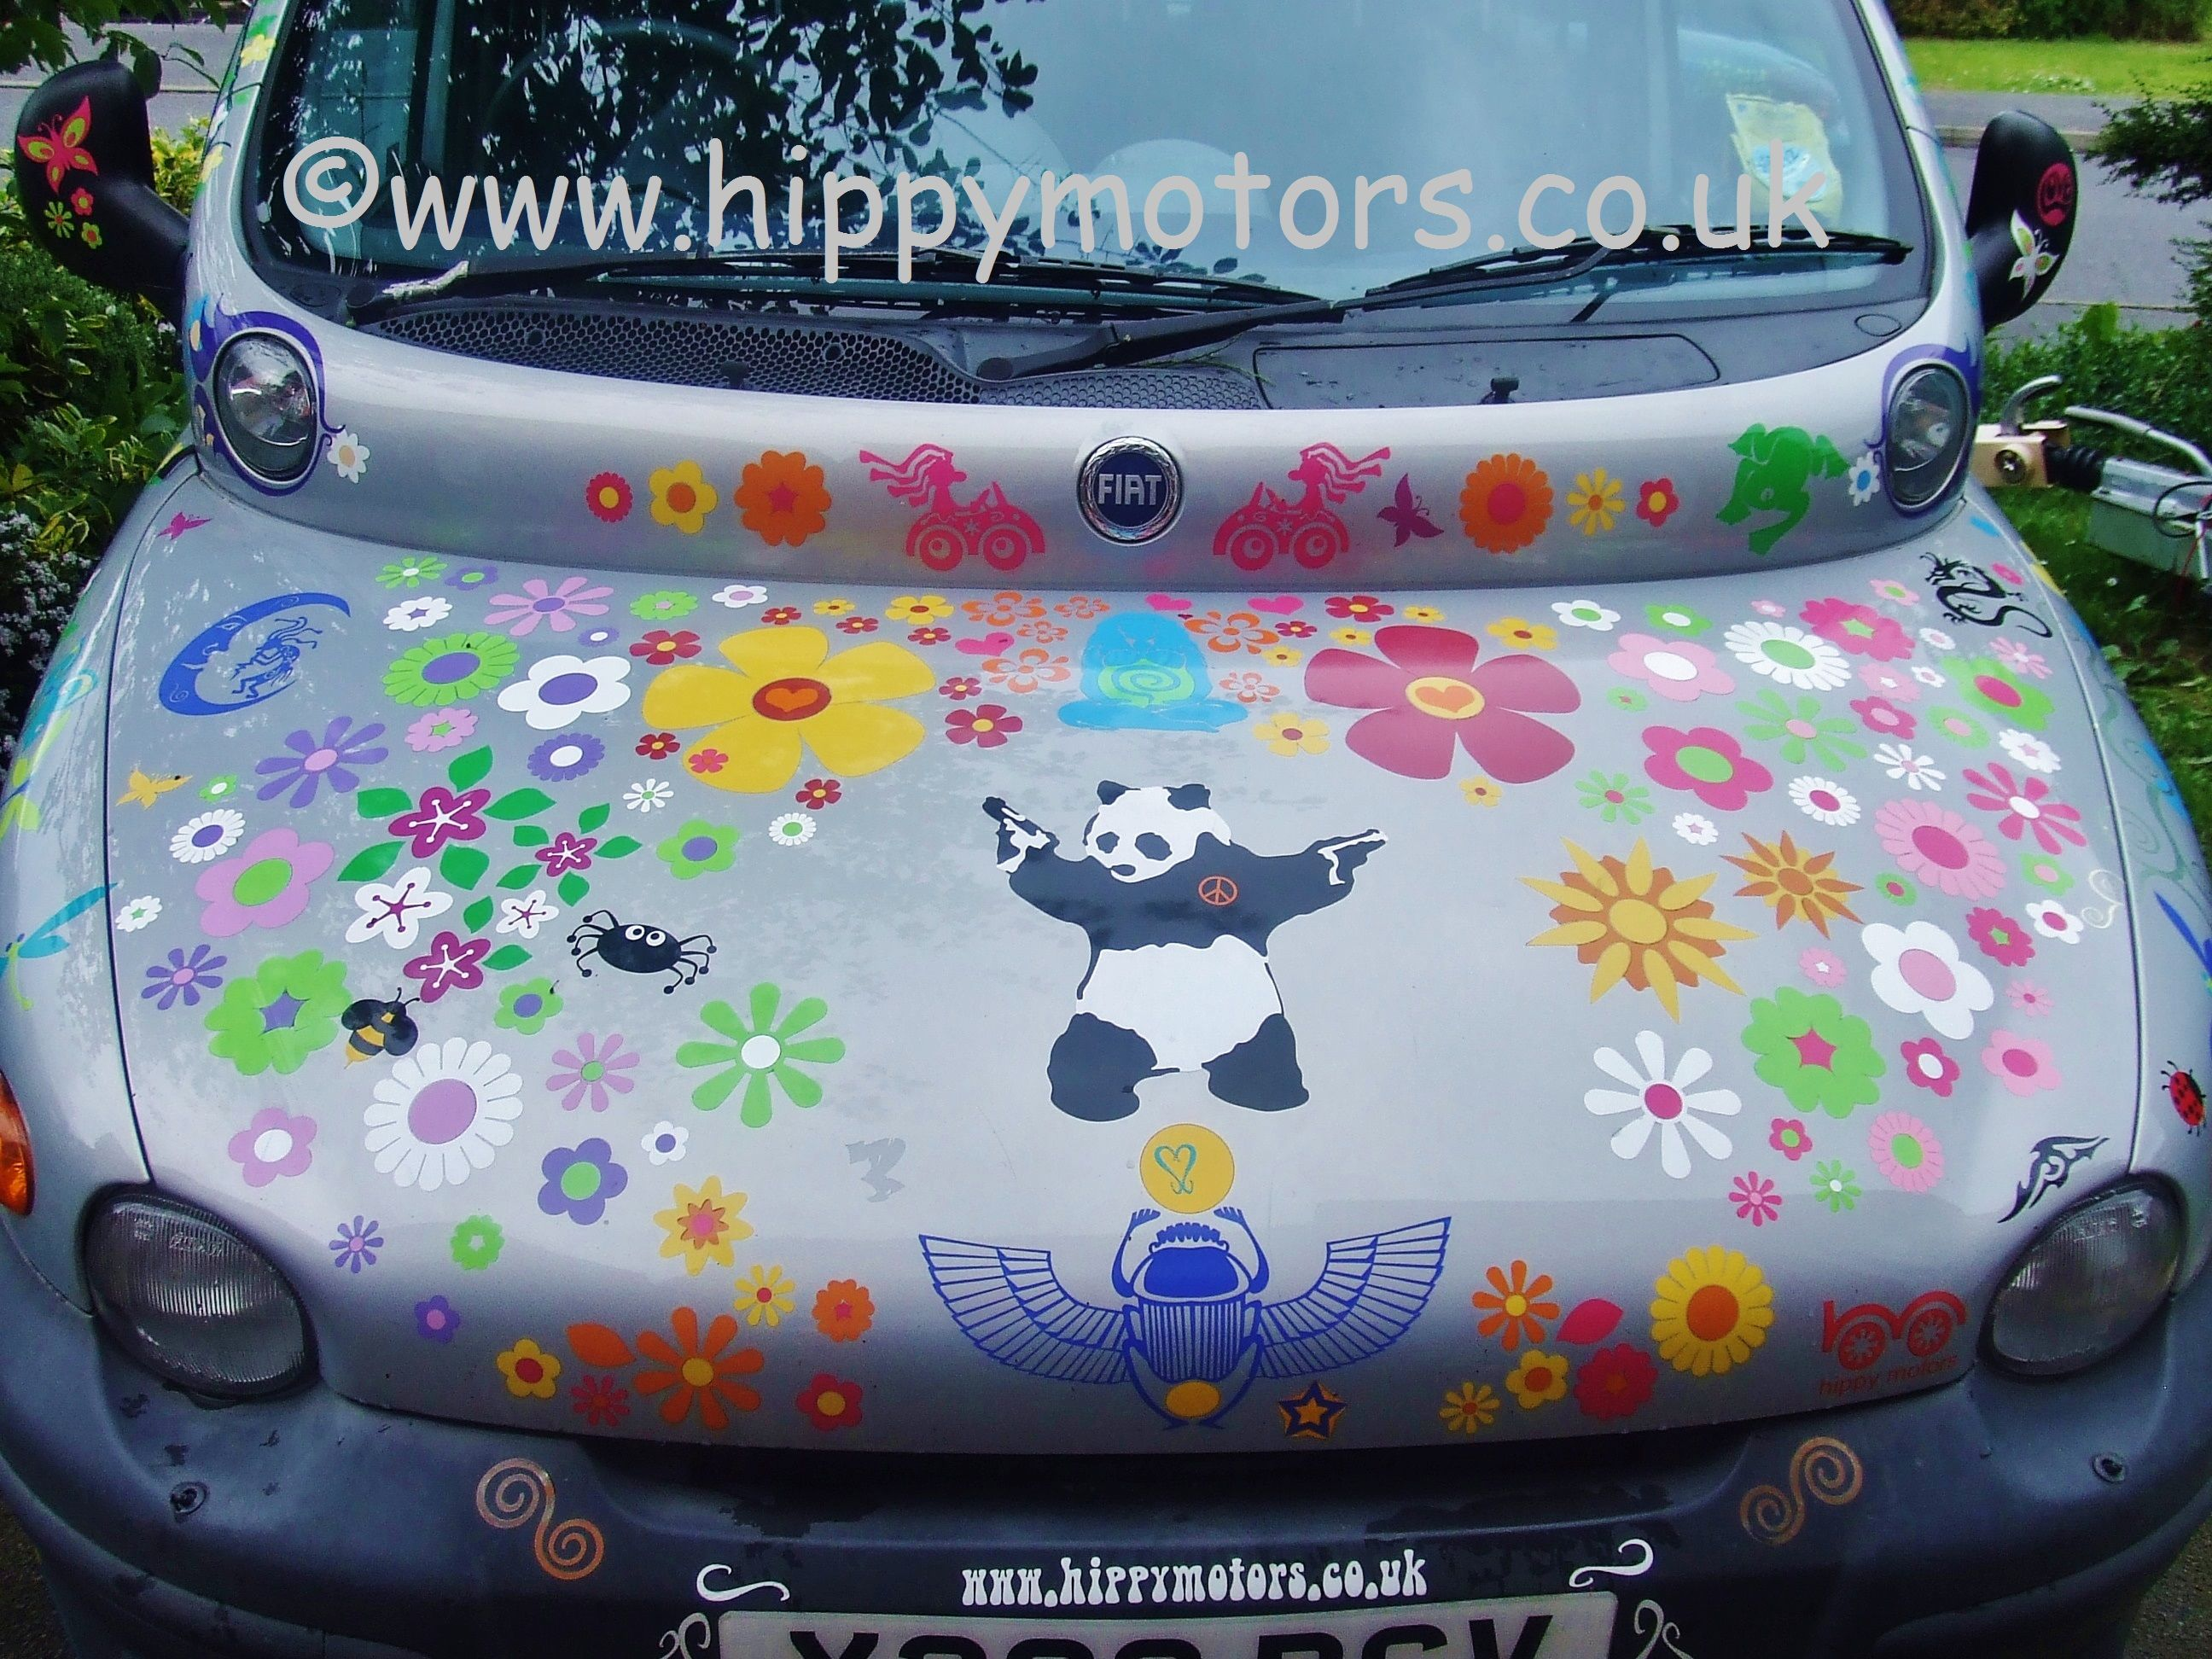 Funky fiat multipla ugly bug decals stickers by hippy motors https www